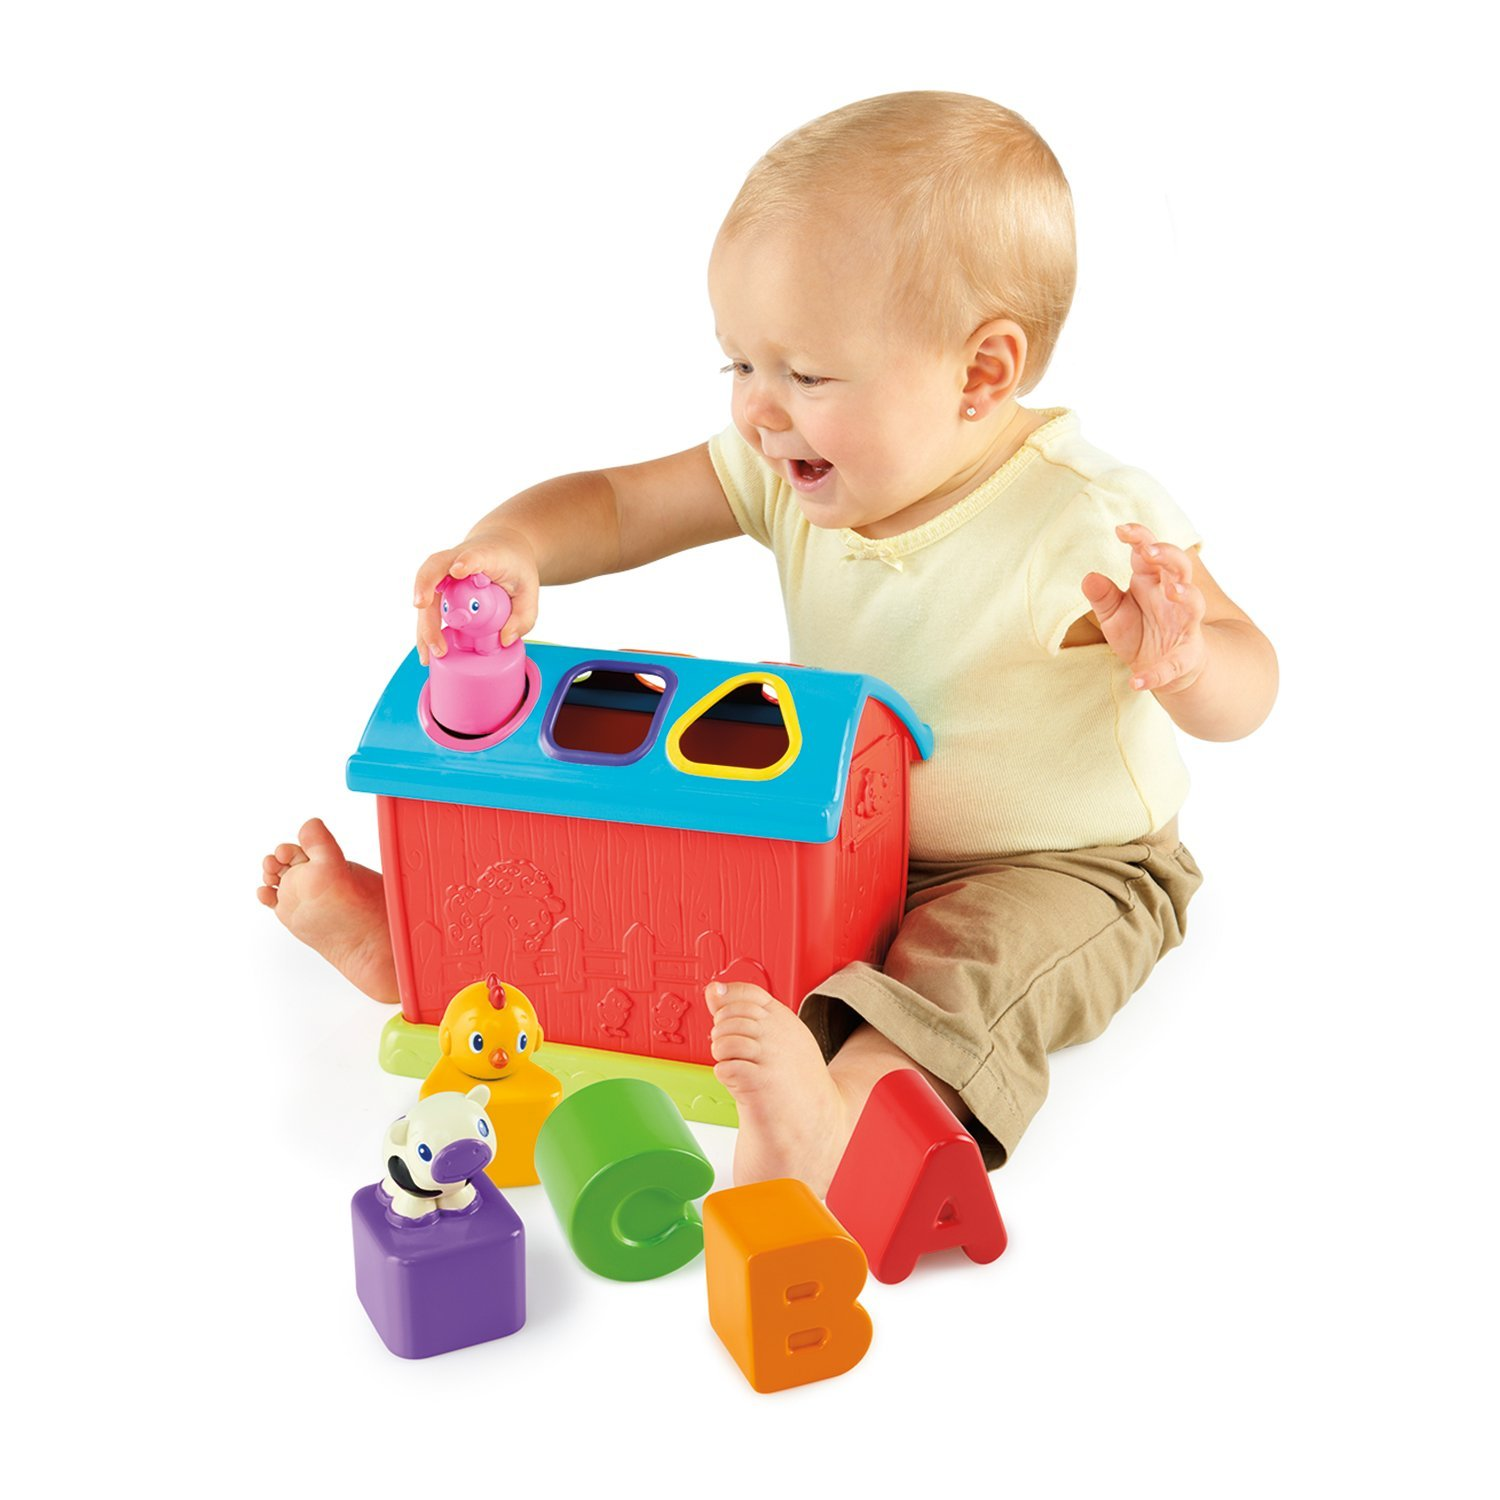 Best learning toys for 18 month old 2020 - Best ...